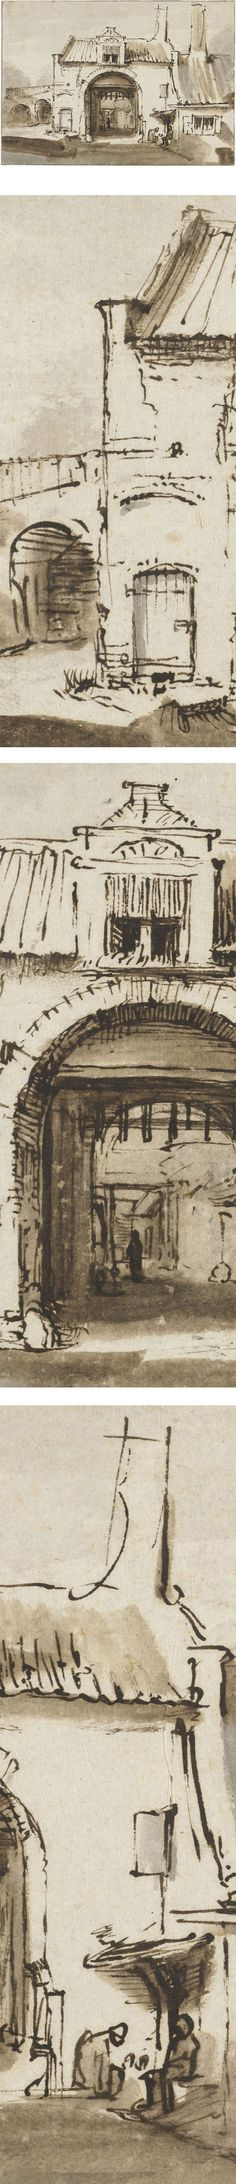 Eye Candy for Today: Rembrandt townscape drawing (lines and colors)